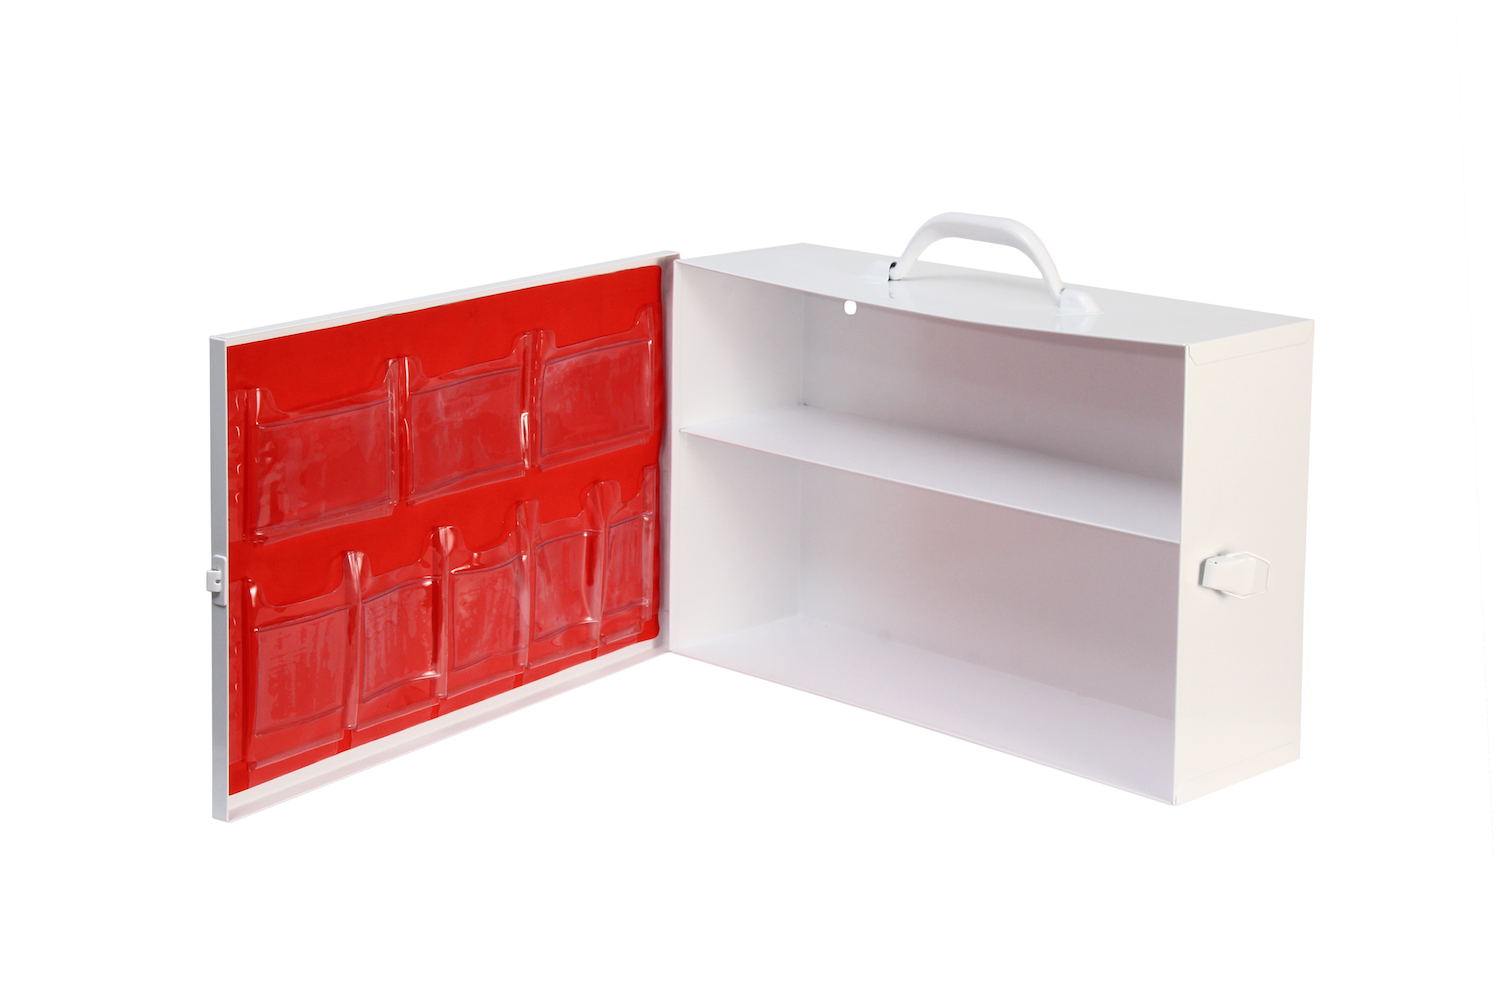 Door Pocket / 2 Shelf Cabinet / Red   2 rows / 8 pockets / No tape  Shown on #126 cabinet   Install optional